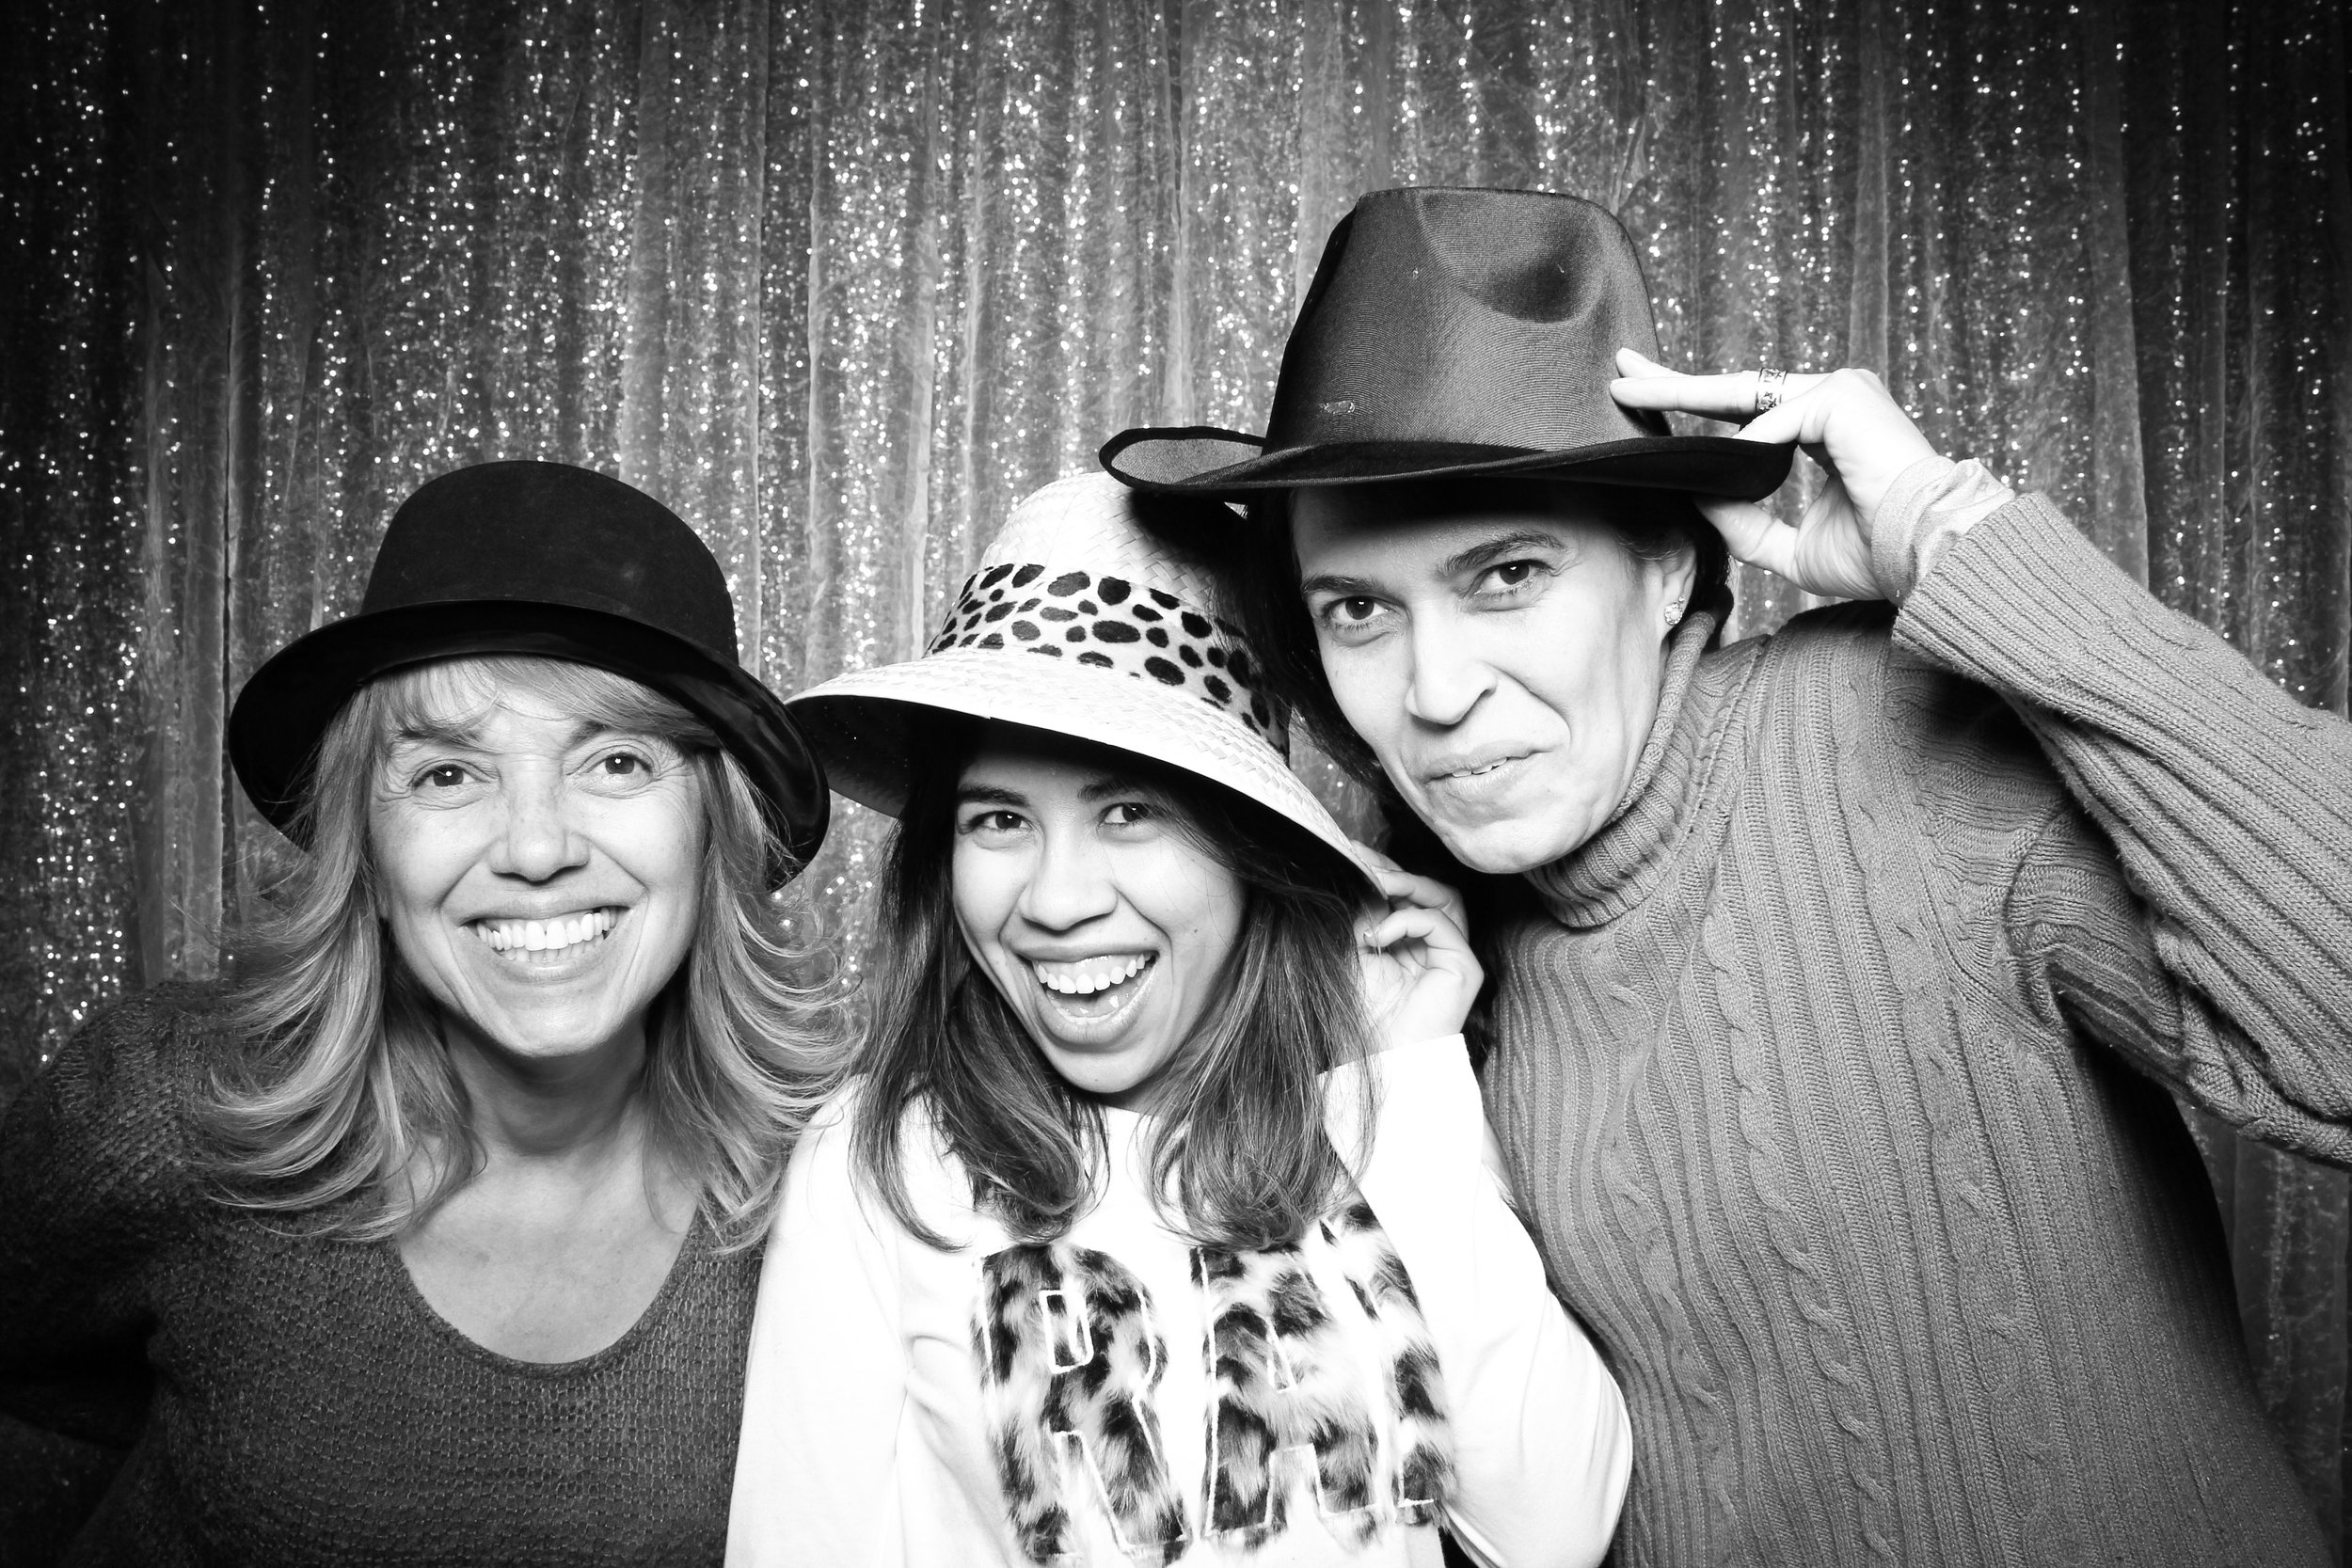 Chicago_Vintage_Wedding_Photobooth_Downers_Grove_41.jpg